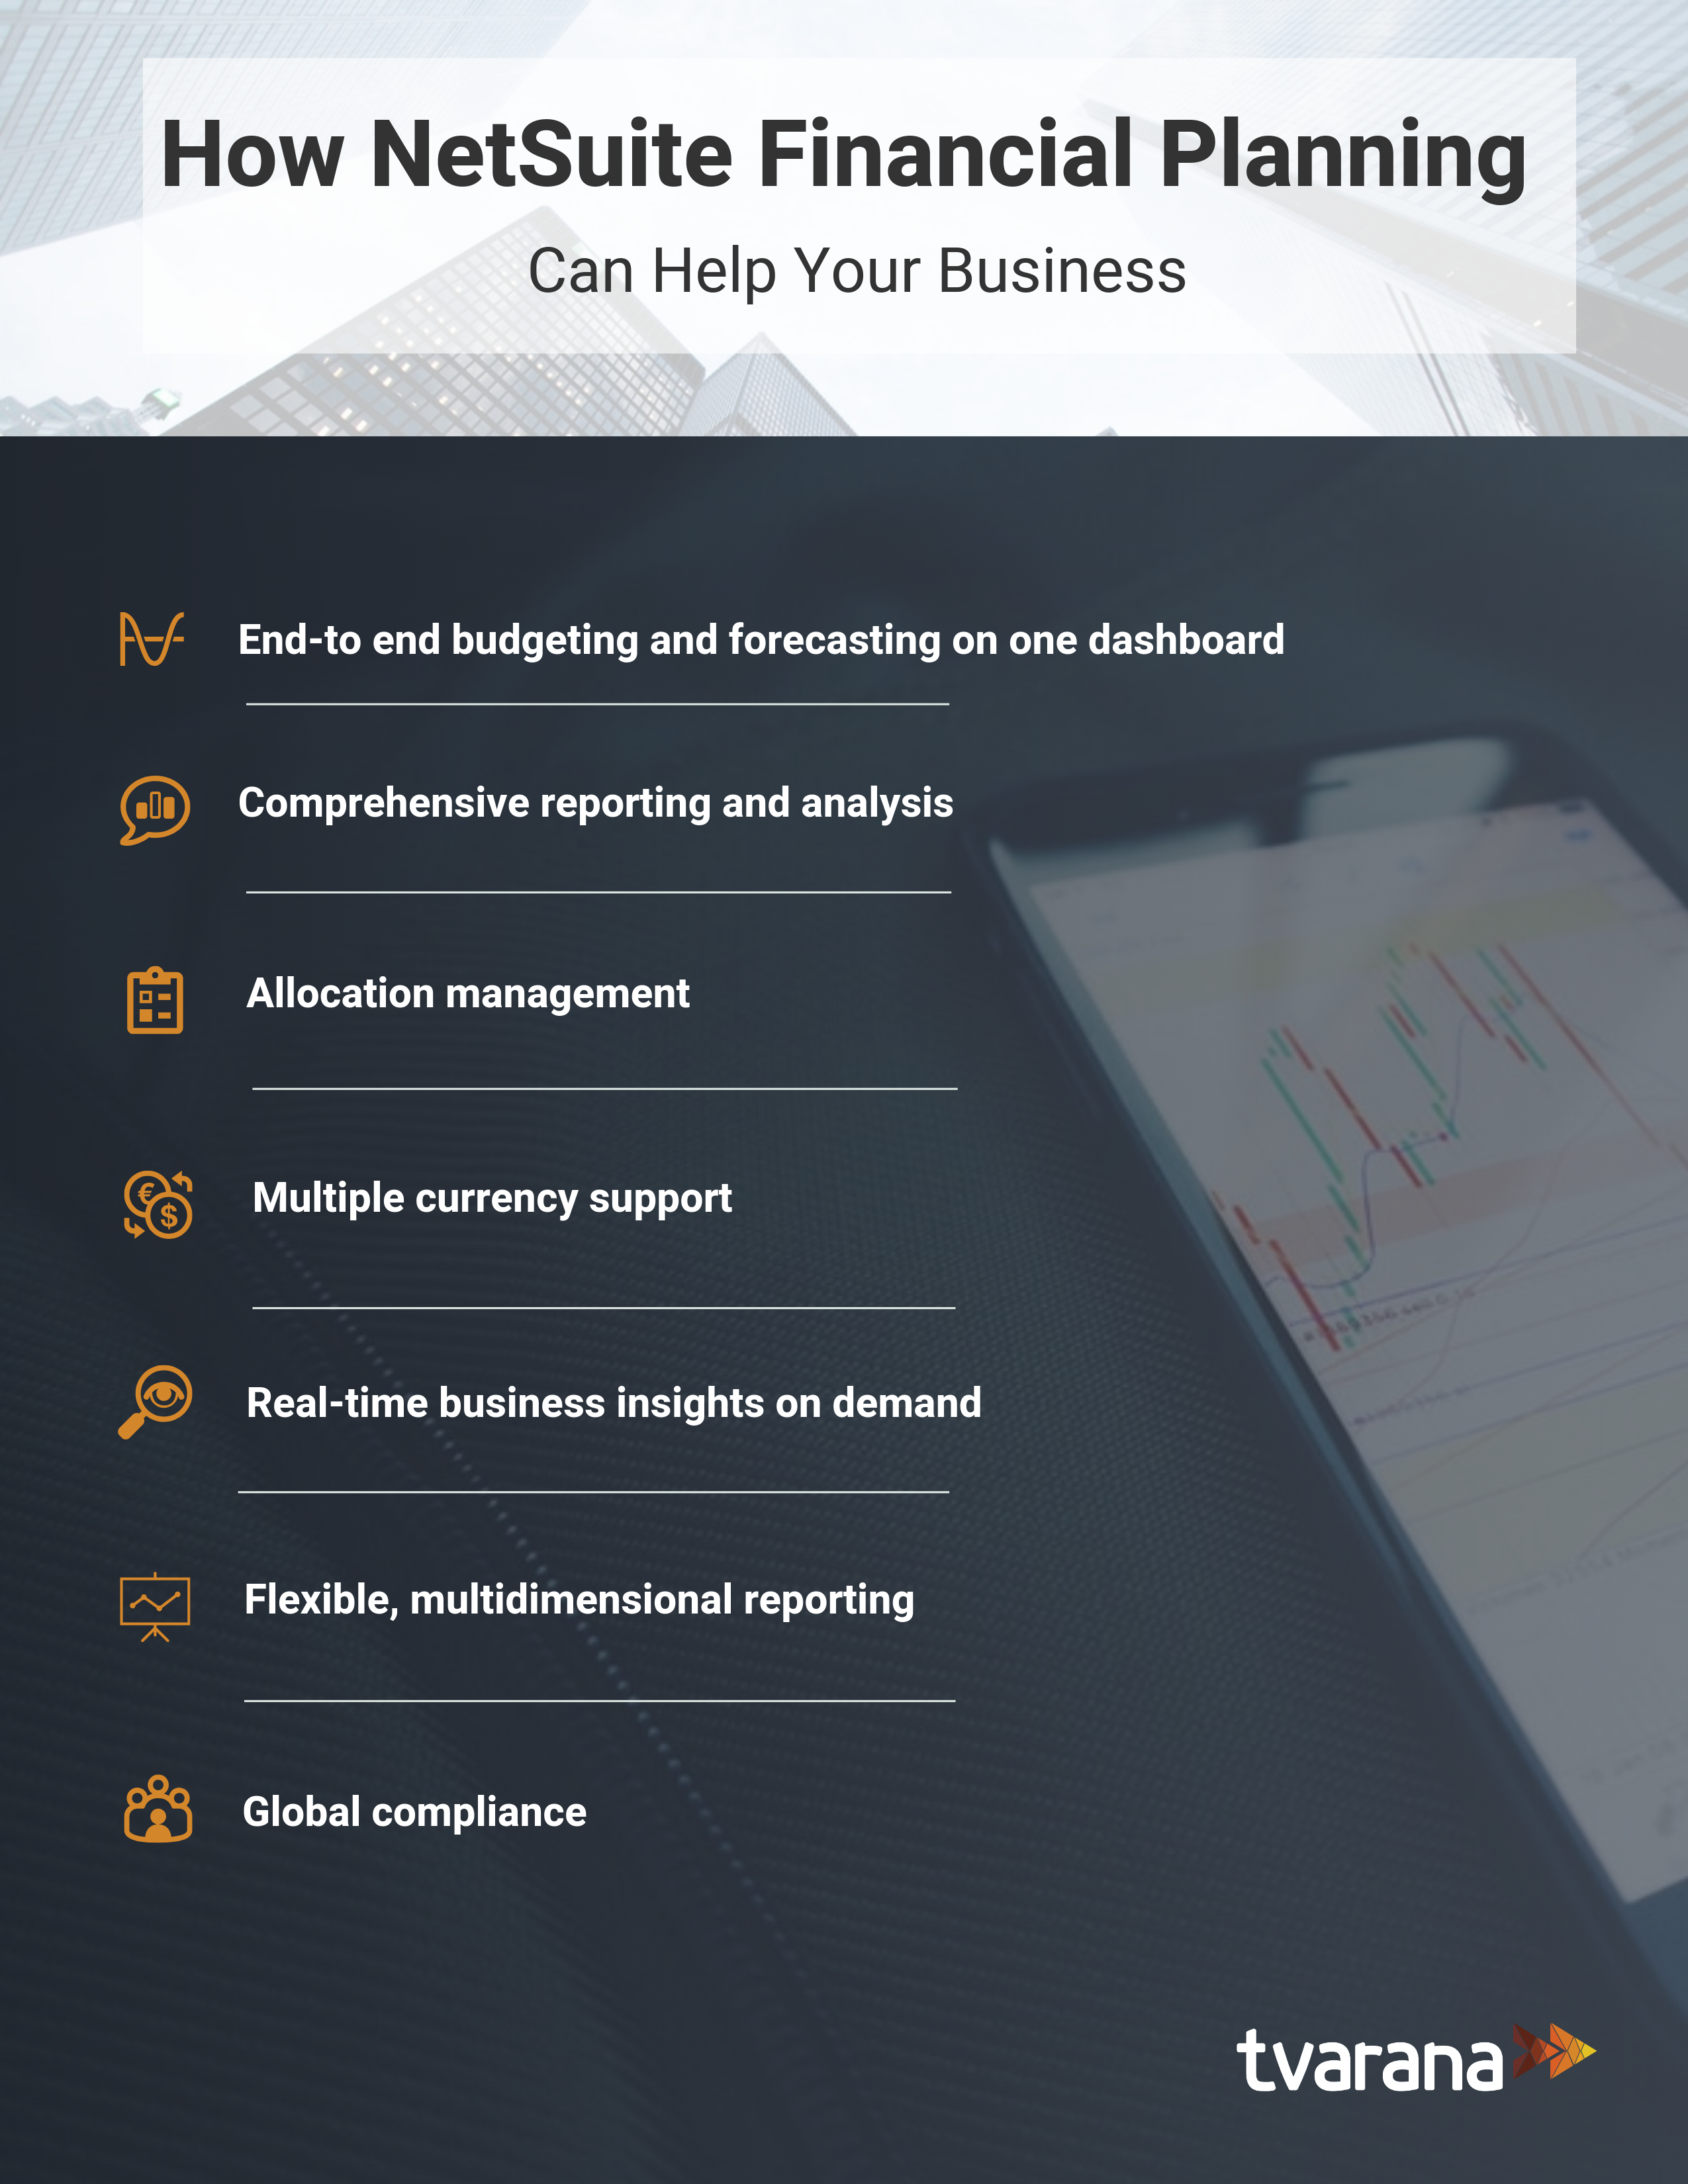 NetSuite Financial Planning Infographic